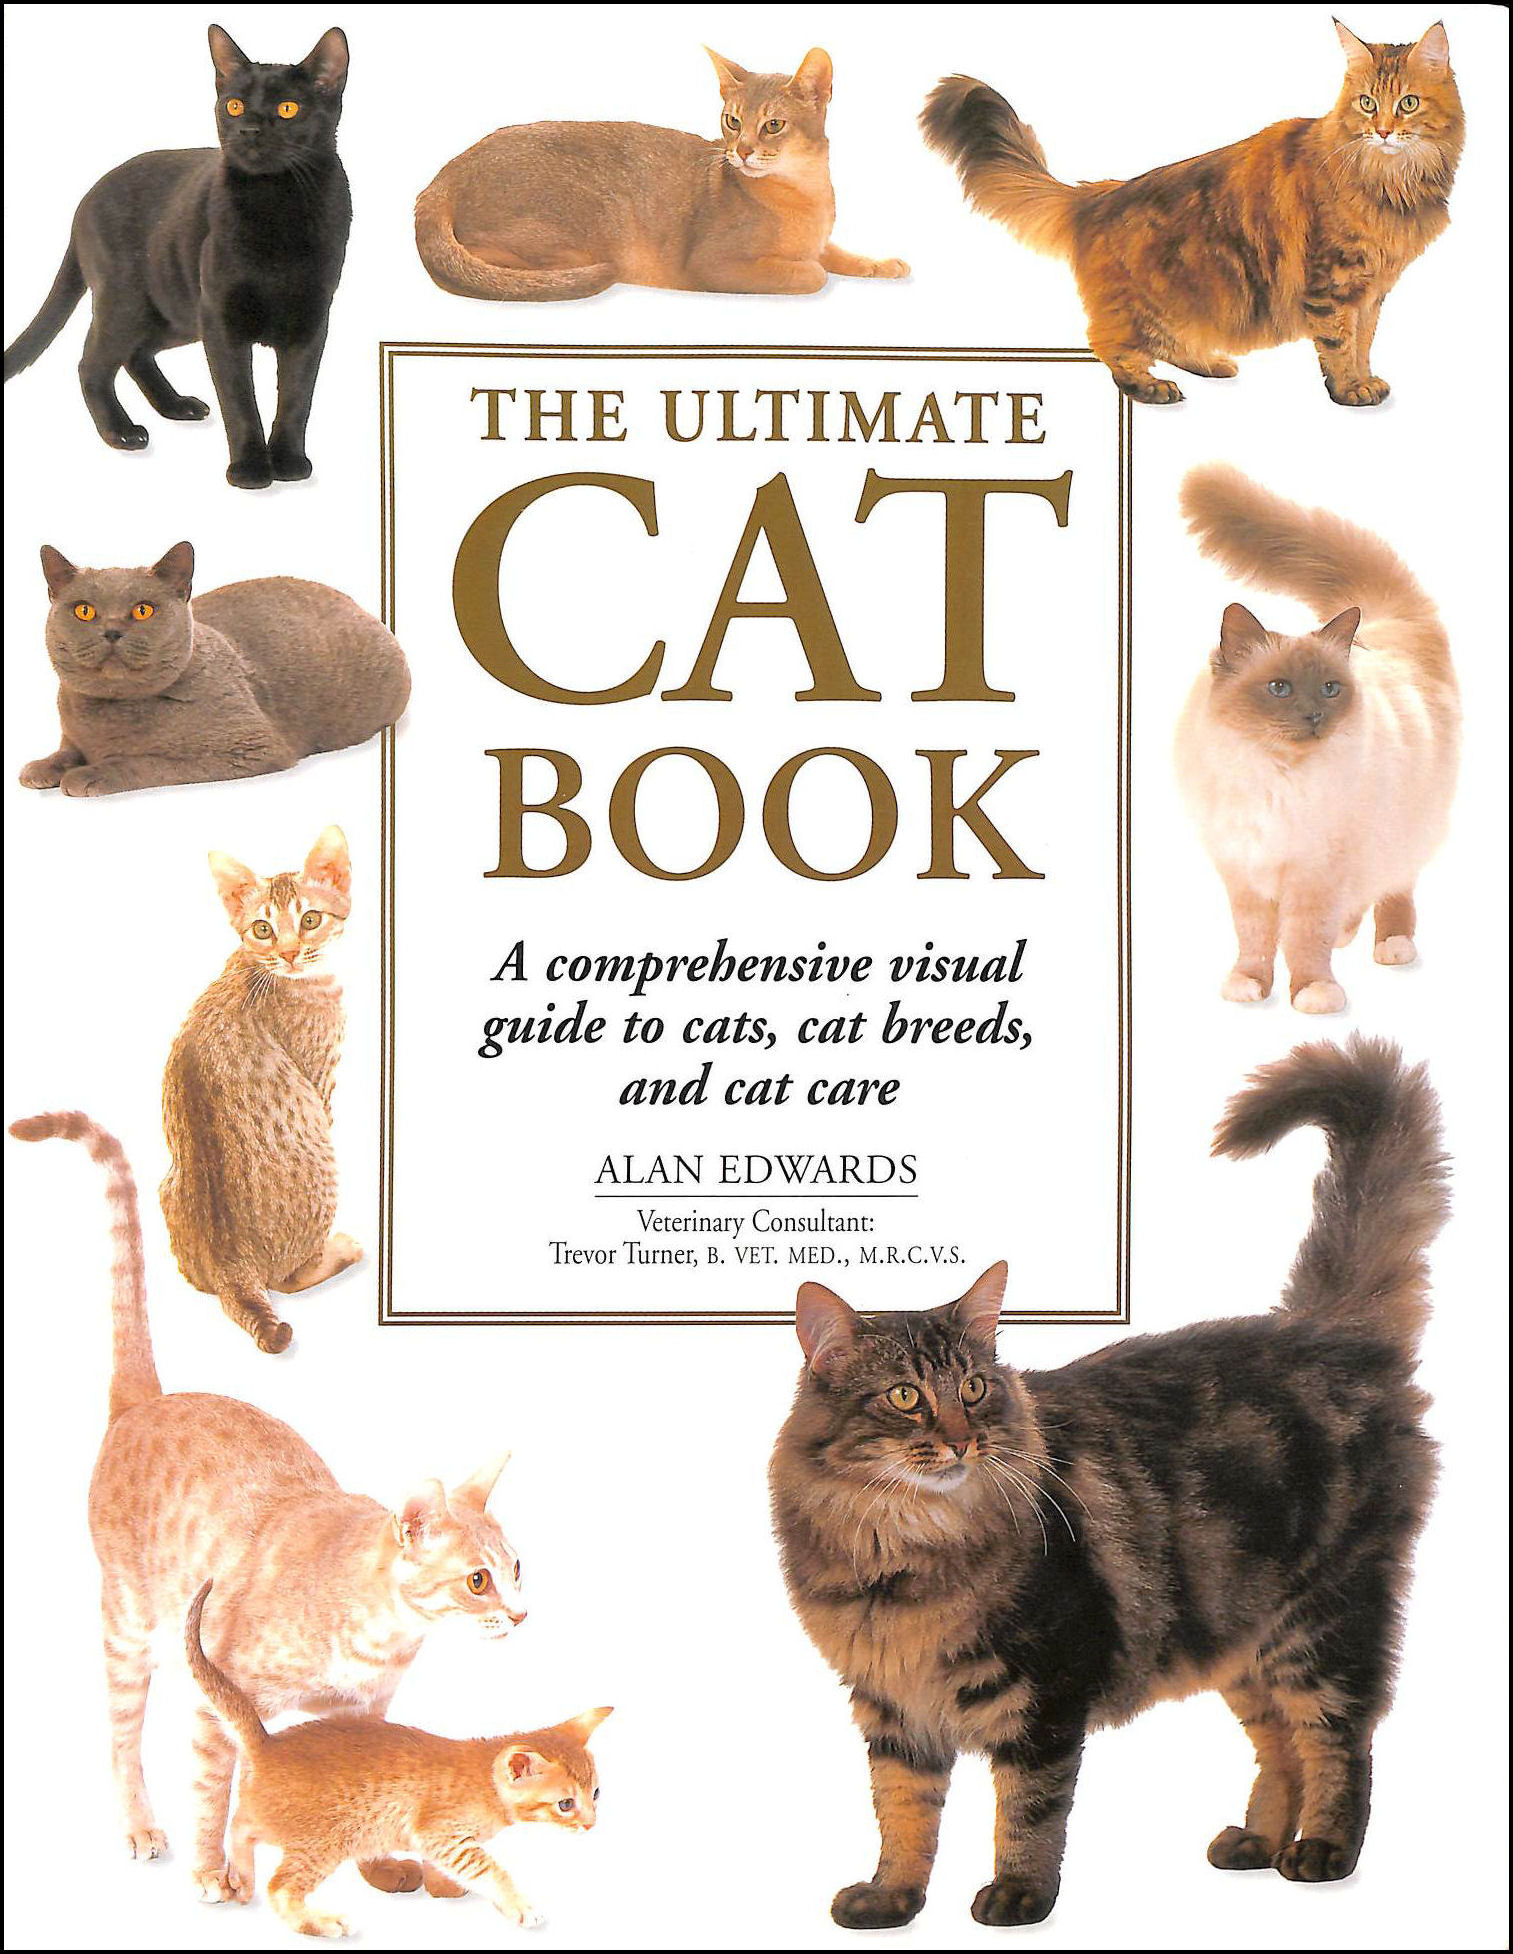 The Ultimate Cat Book, Alan Edwards